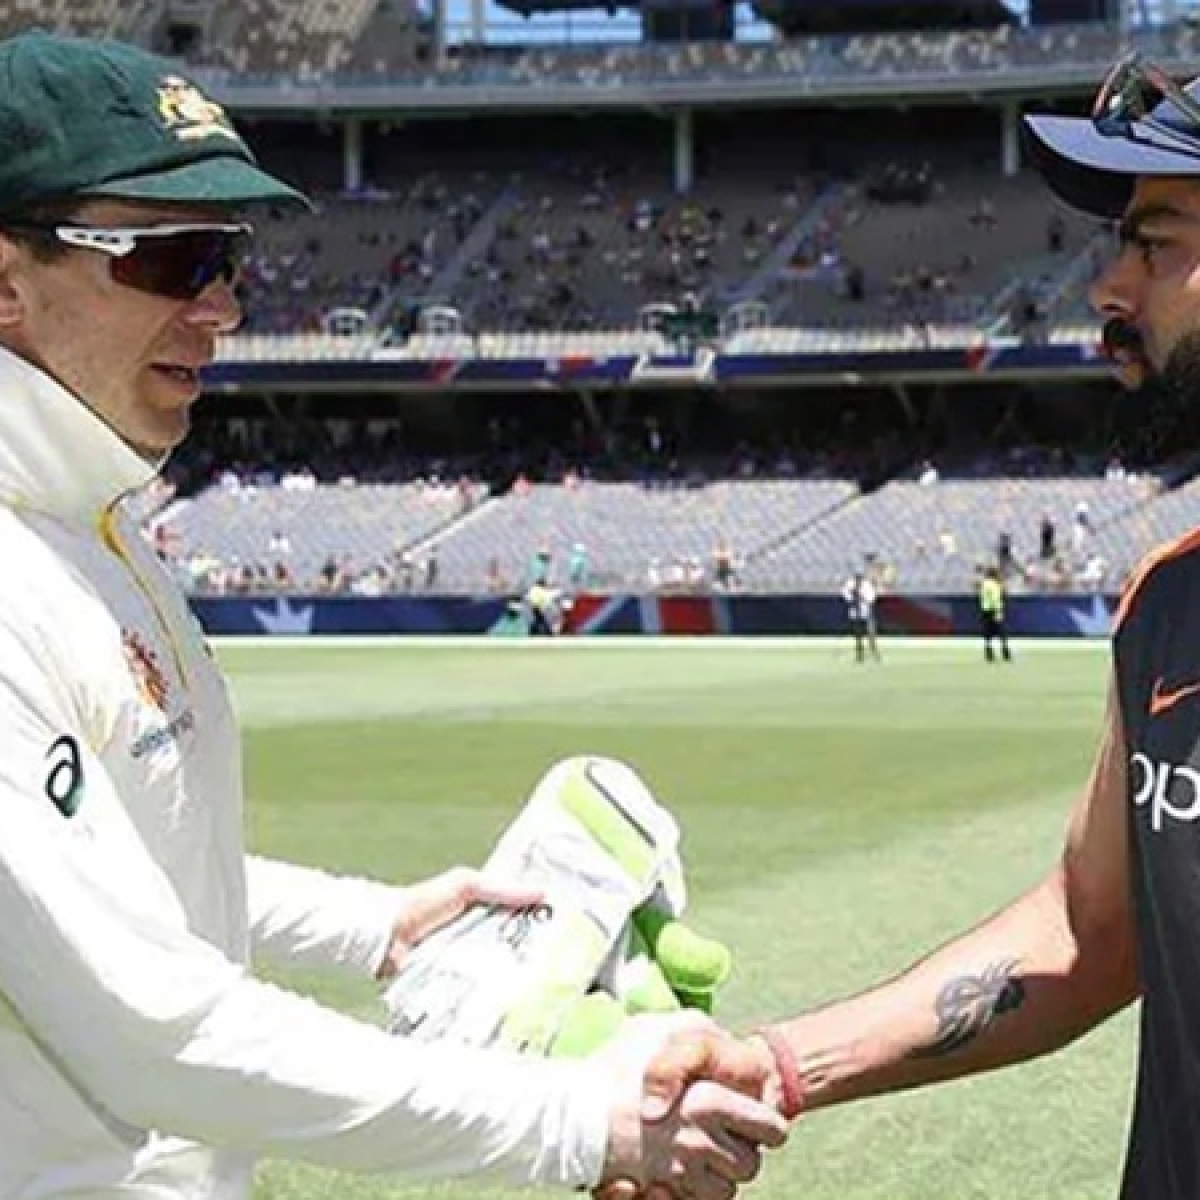 Certainly I didn't notice too many people being that nice to Virat Kohli or not trying to get him out: Tim Paine